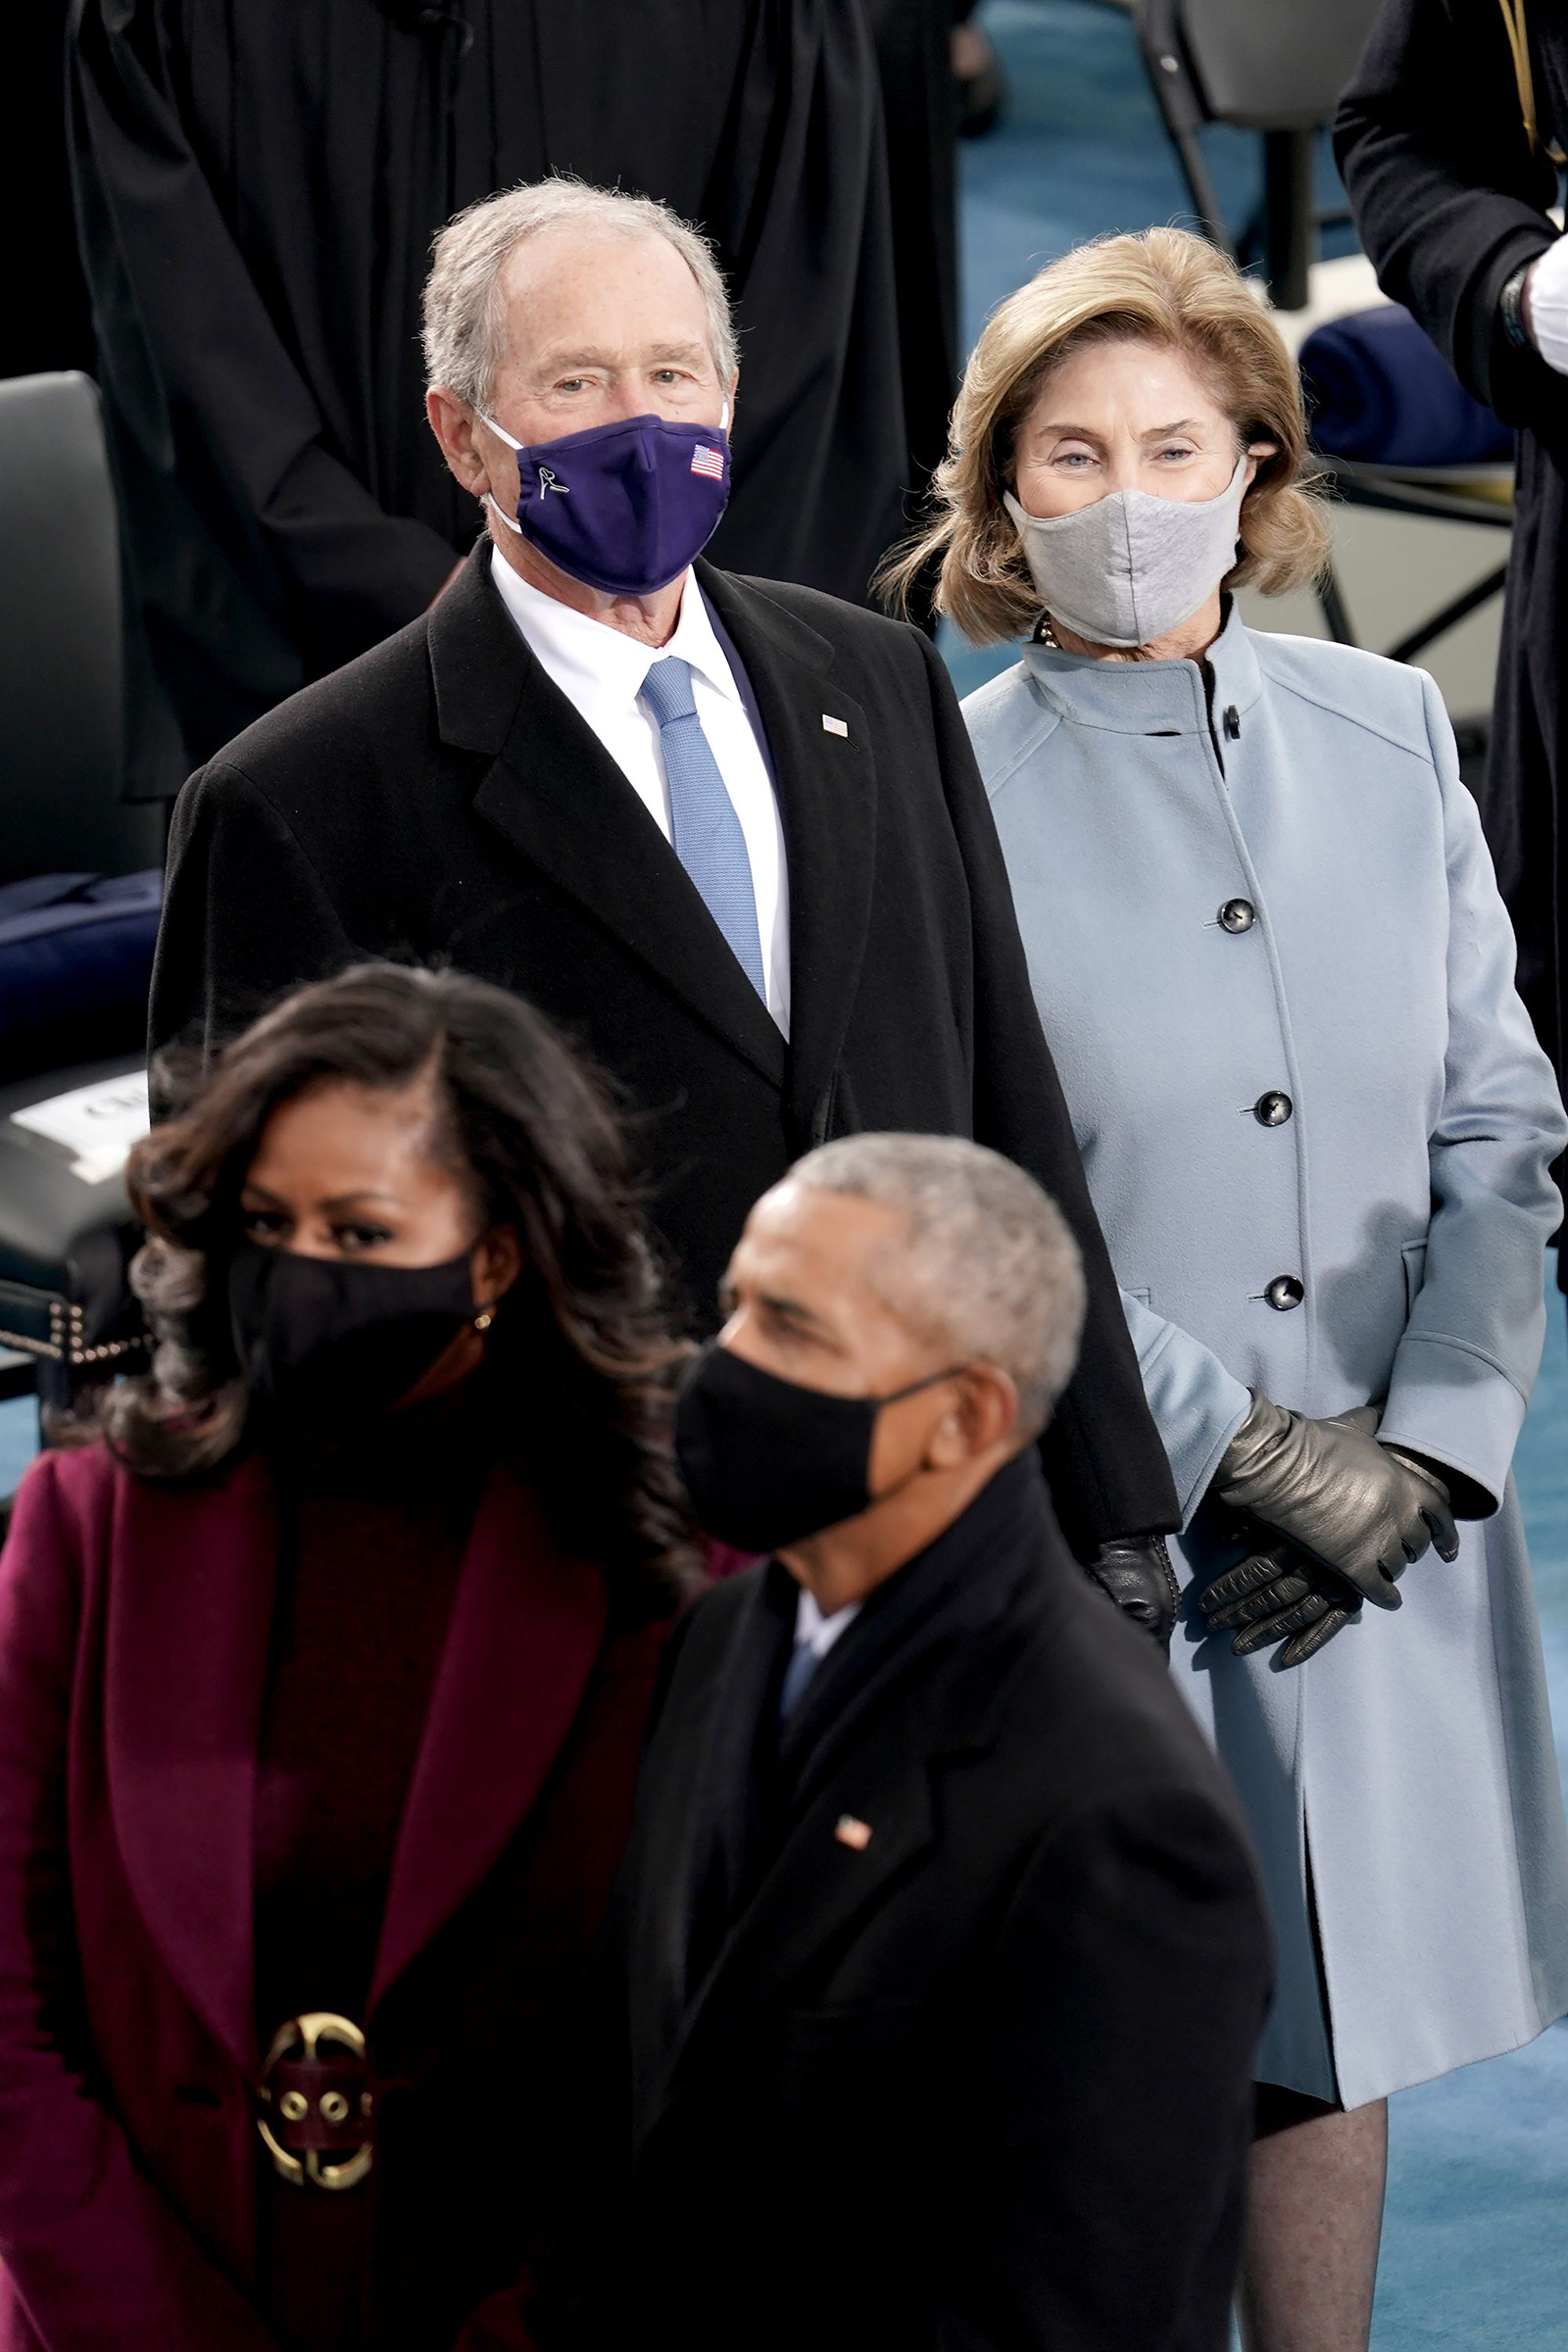 Former President George W. Bush, Laura Bush, former President Barack Obama and Michelle Obama are seen prior to the 59th Presidential Inauguration.